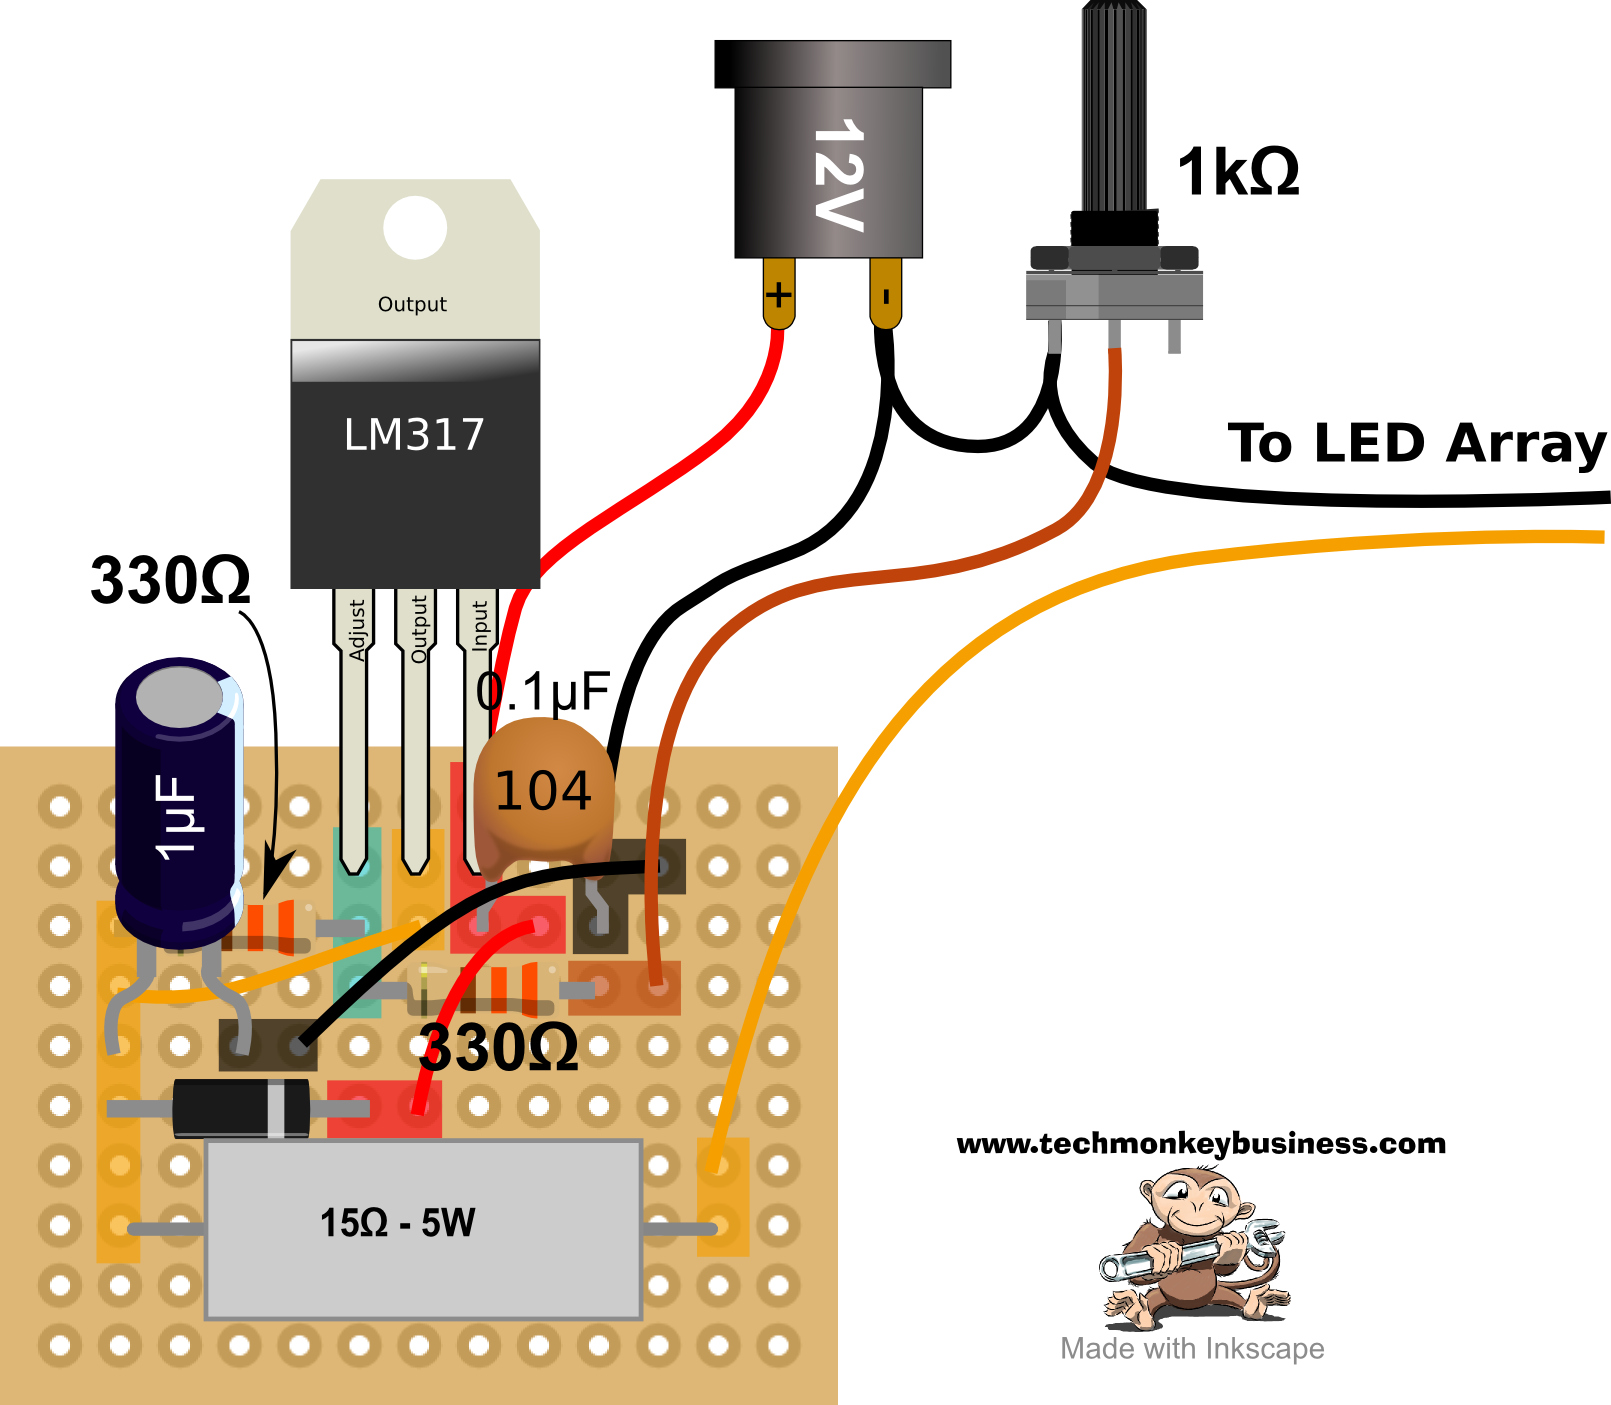 Led Desklamp Hack Finally Here Are My Perfboard Layouts And Some Pictures Layout For The